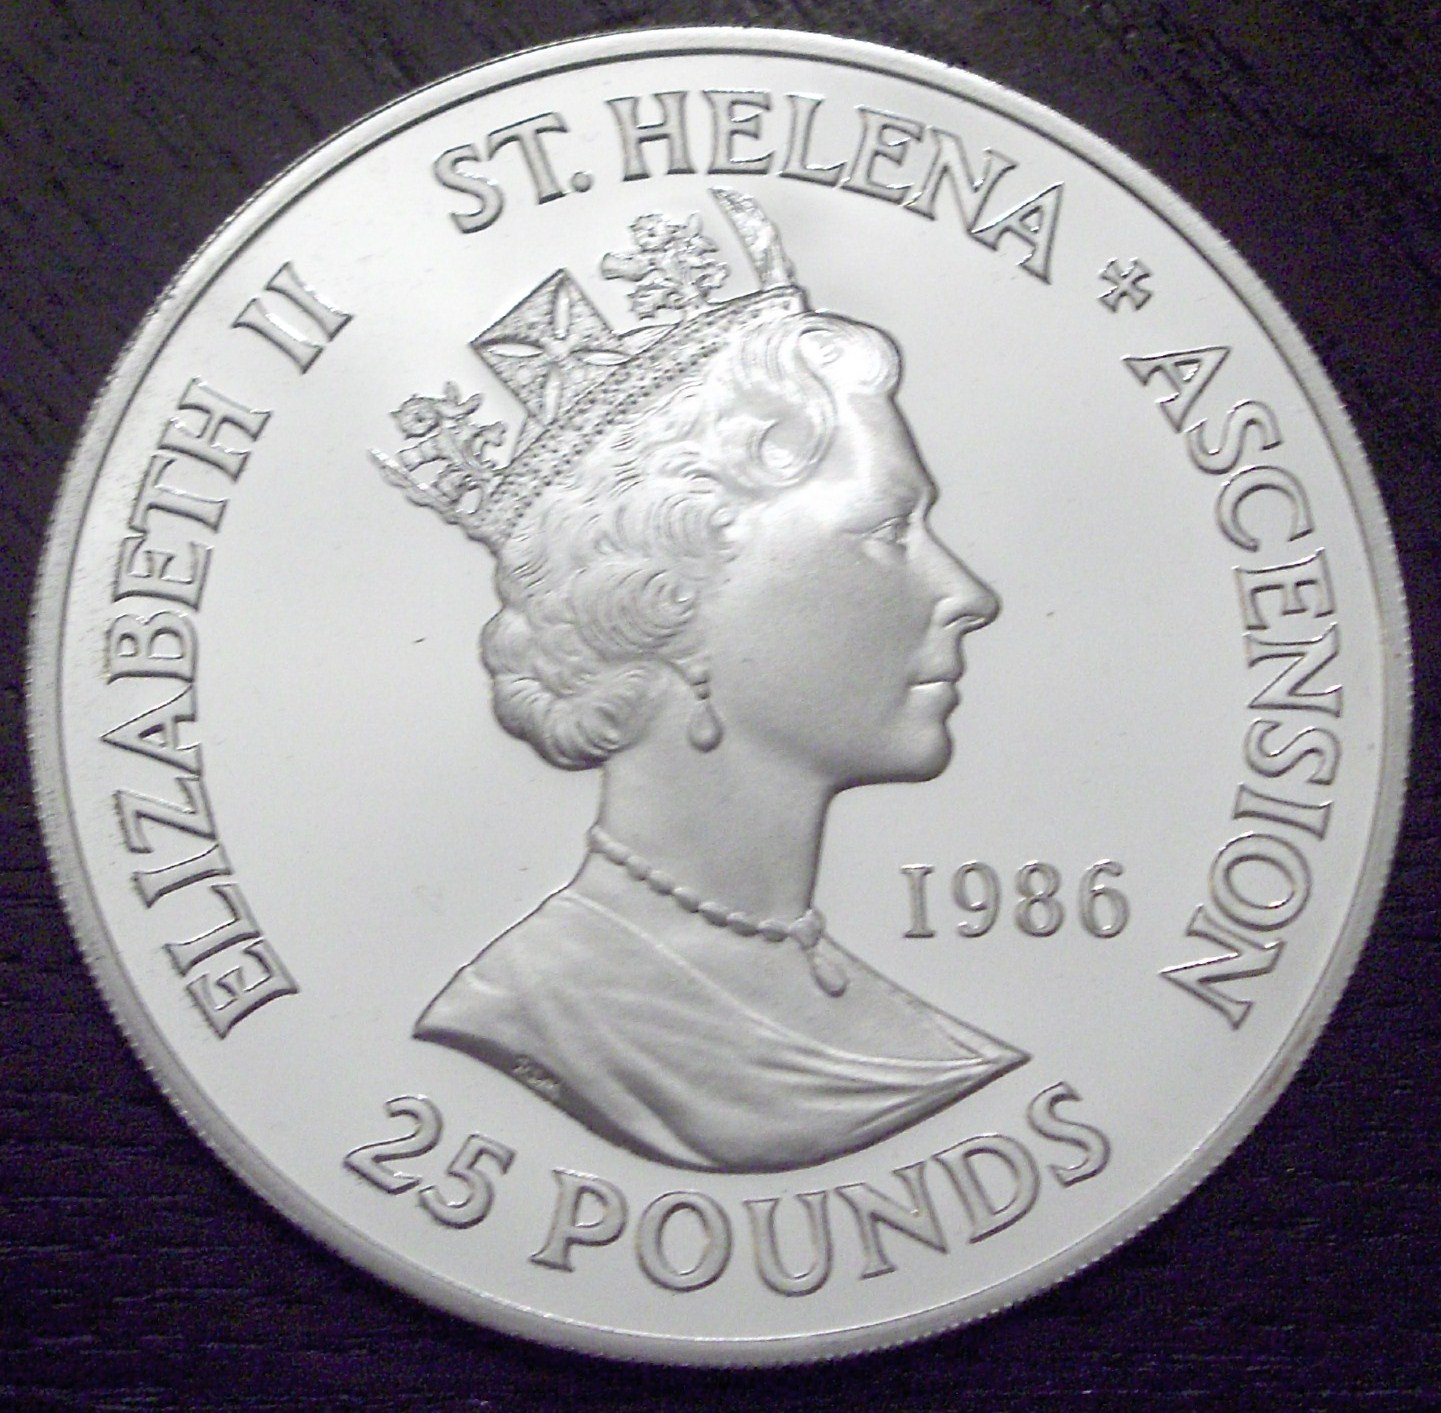 St. Helena 1986 25 Pounds back